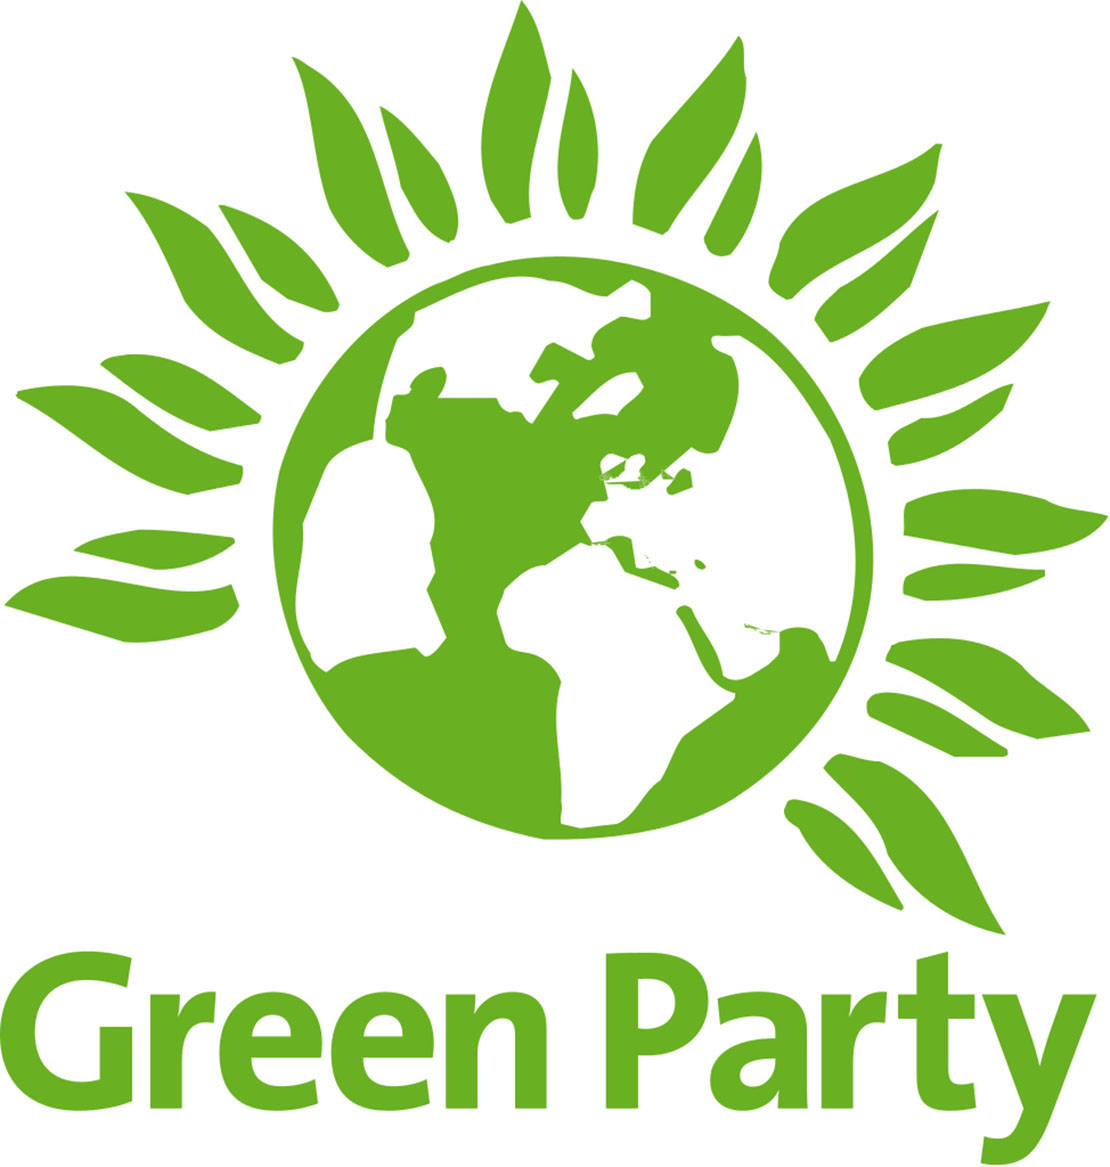 The Green Party is pledging to: